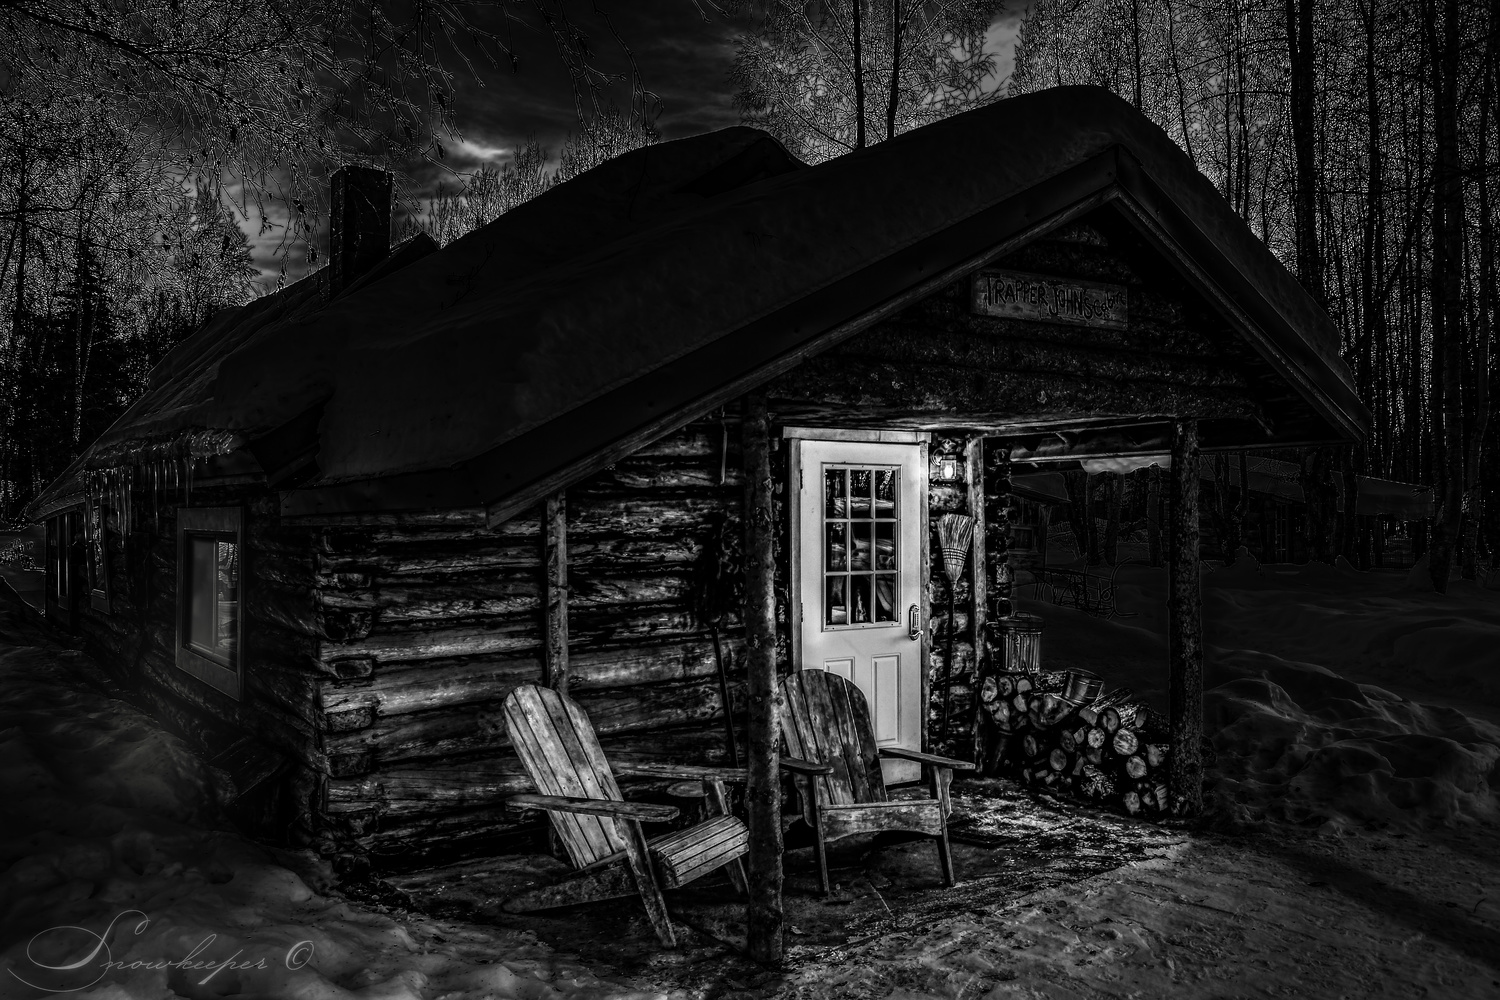 Trapper John's Cabin by Heather Langlois